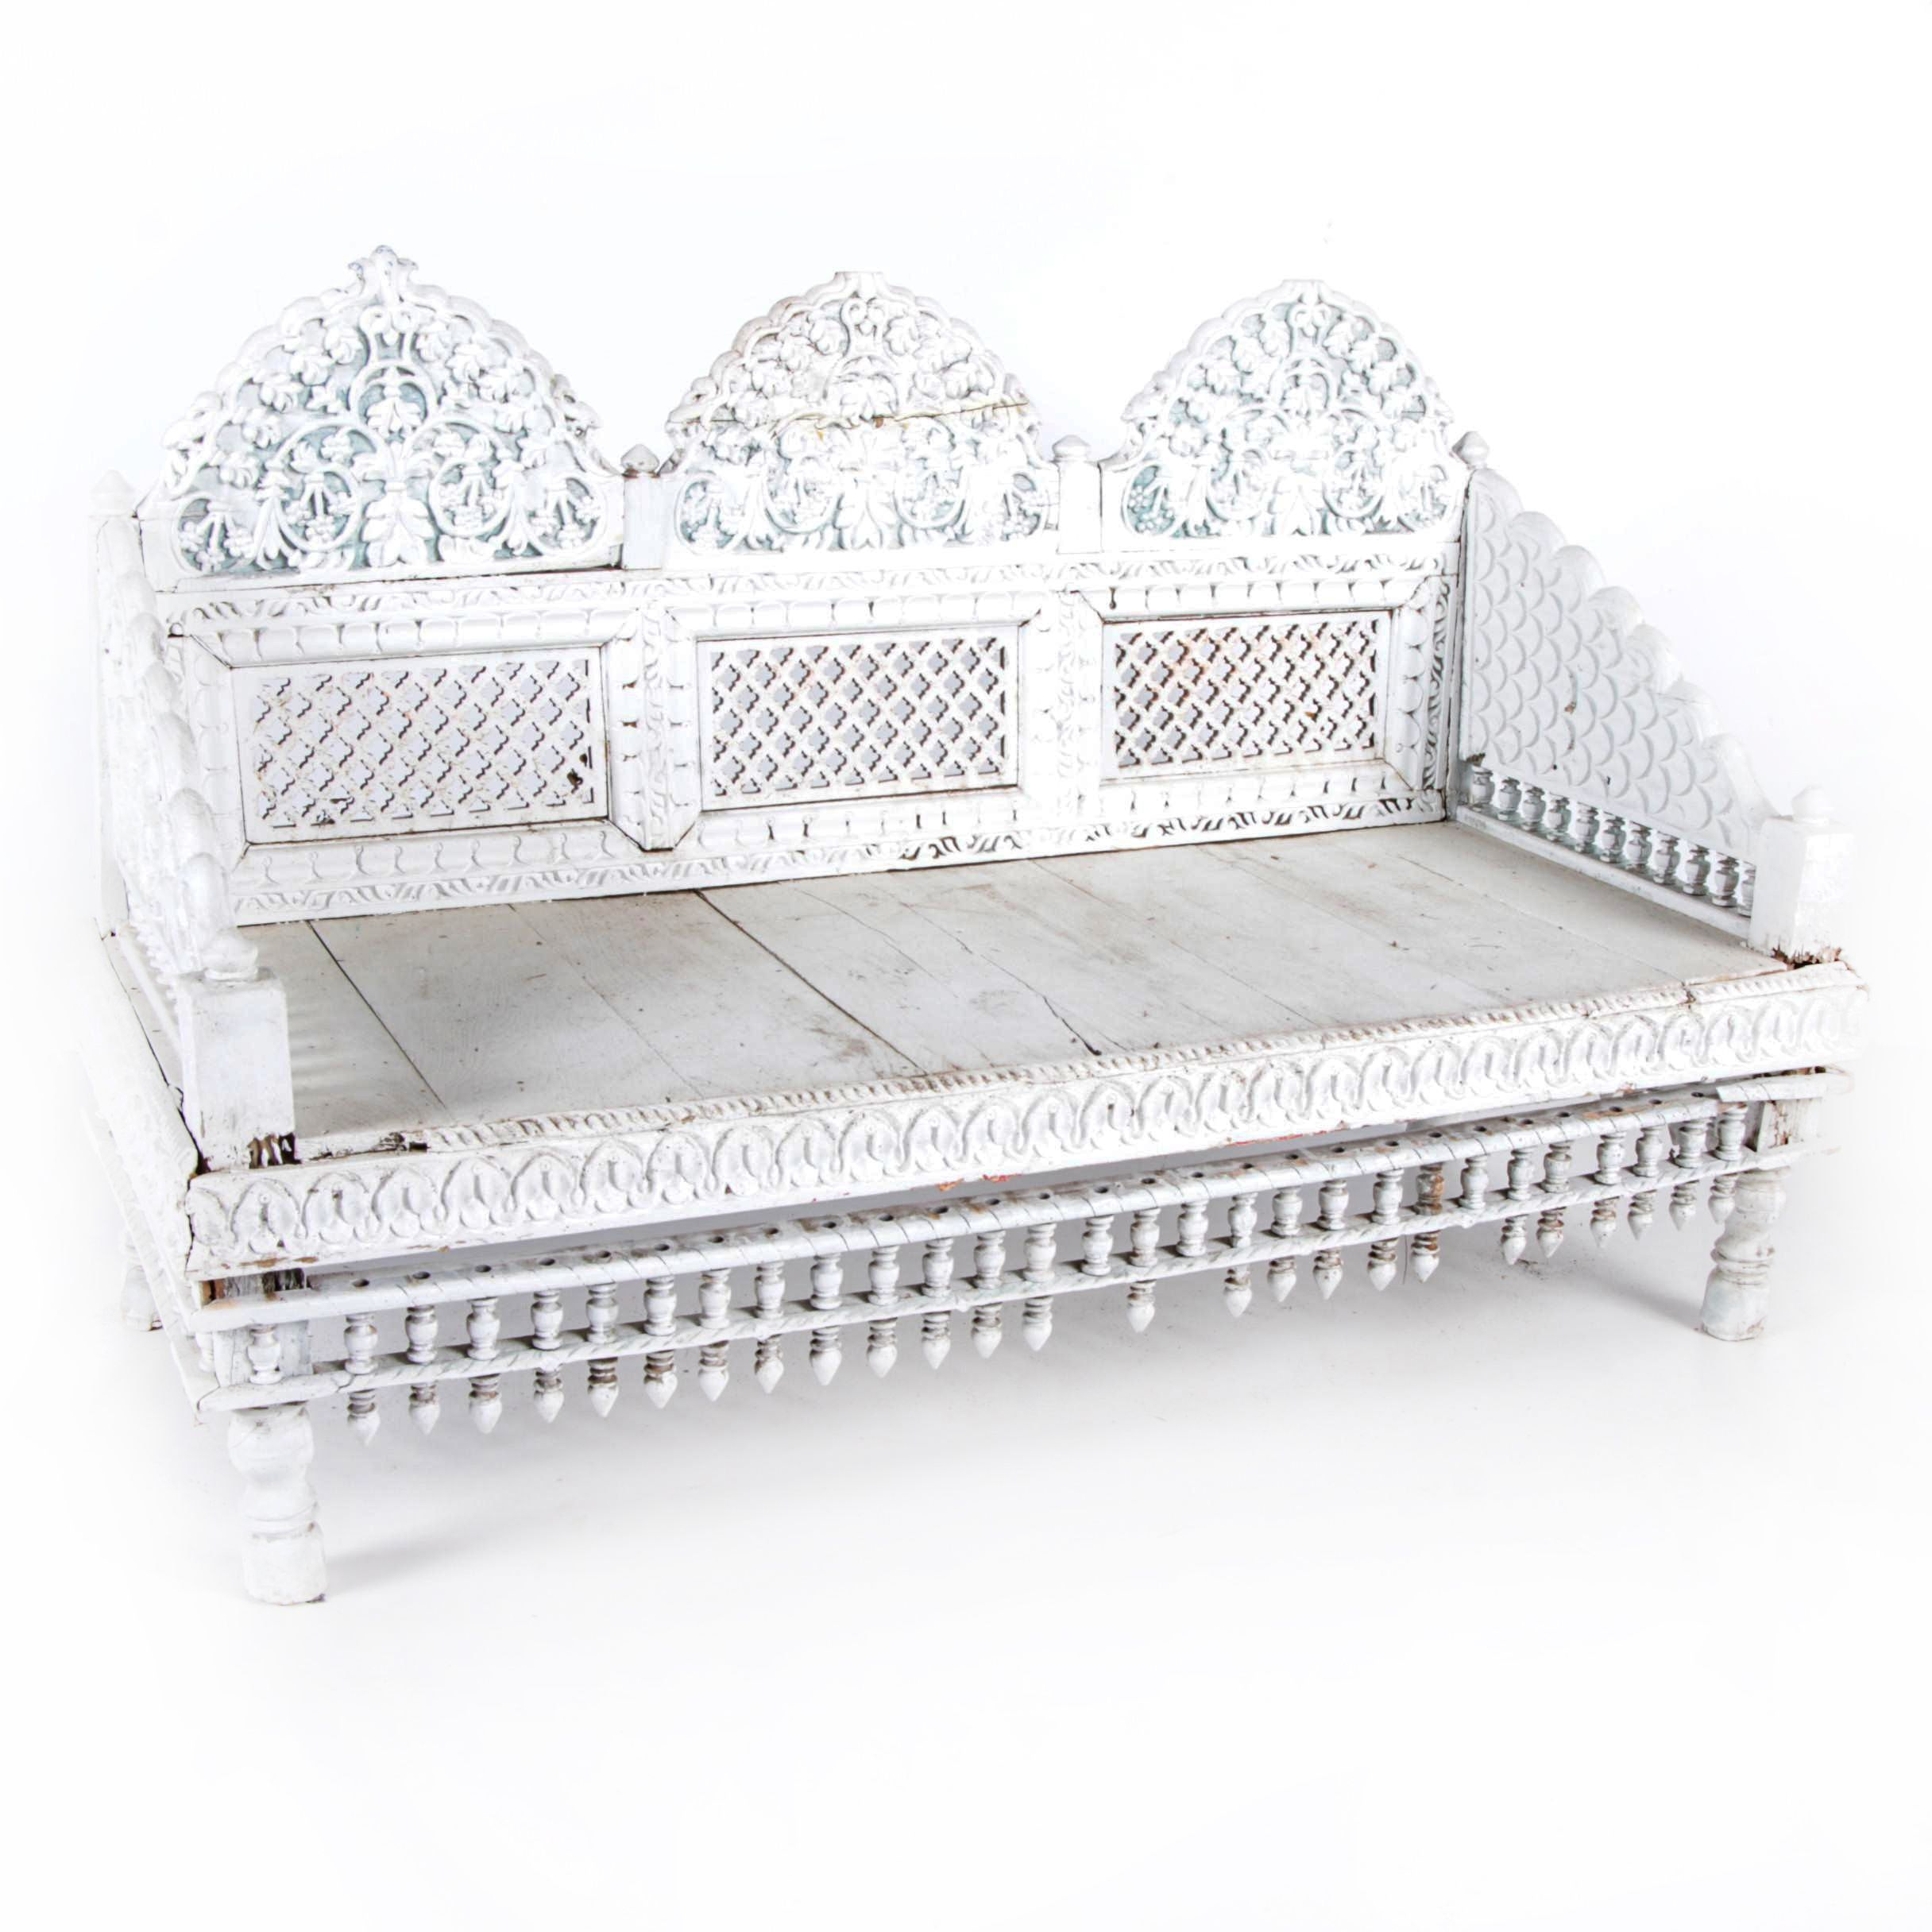 Decorative Painted Wood Bench